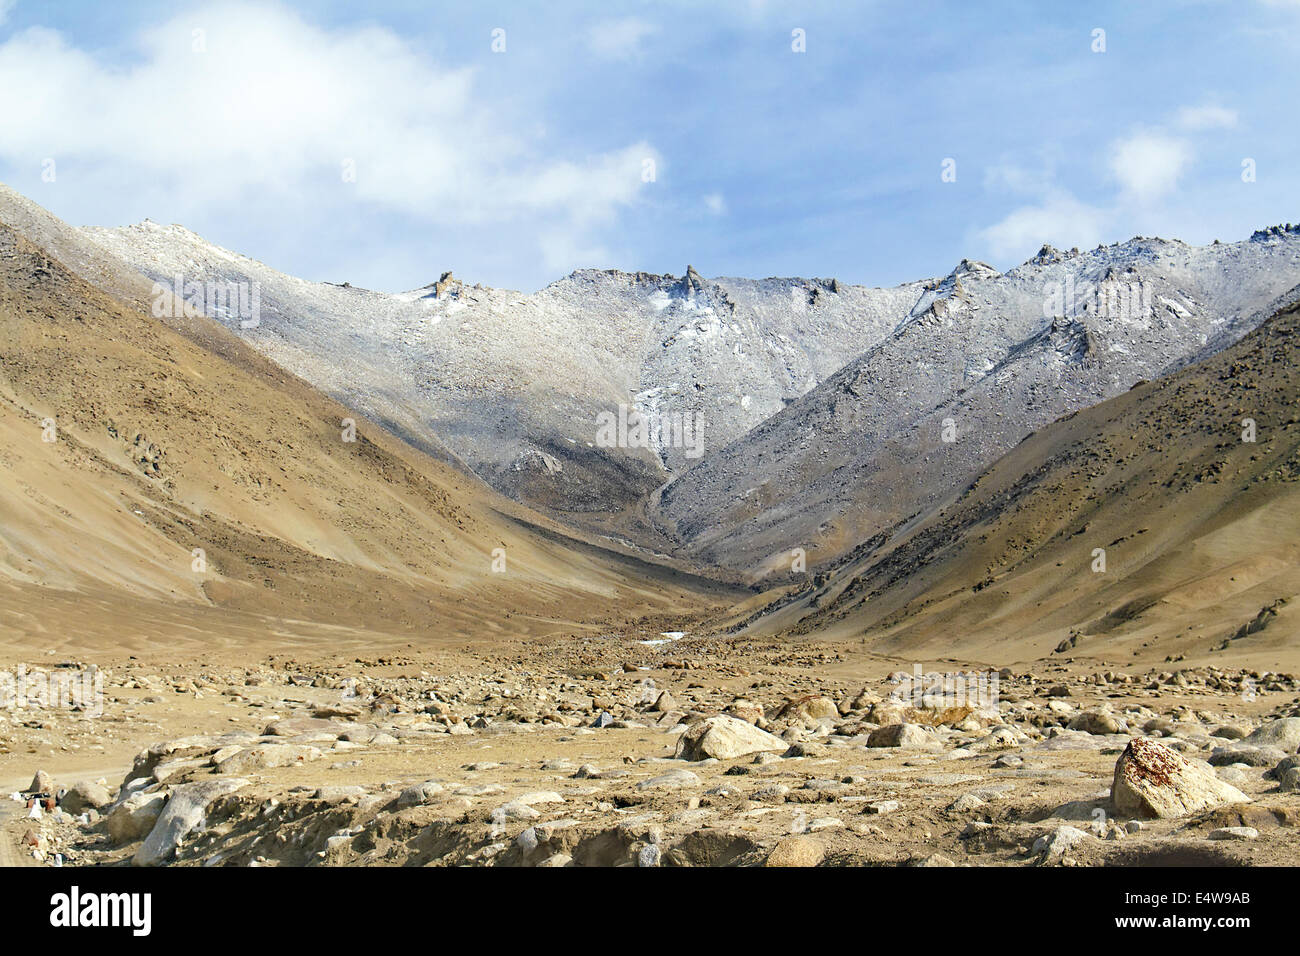 mountain valley in the Himalayas - Stock Image